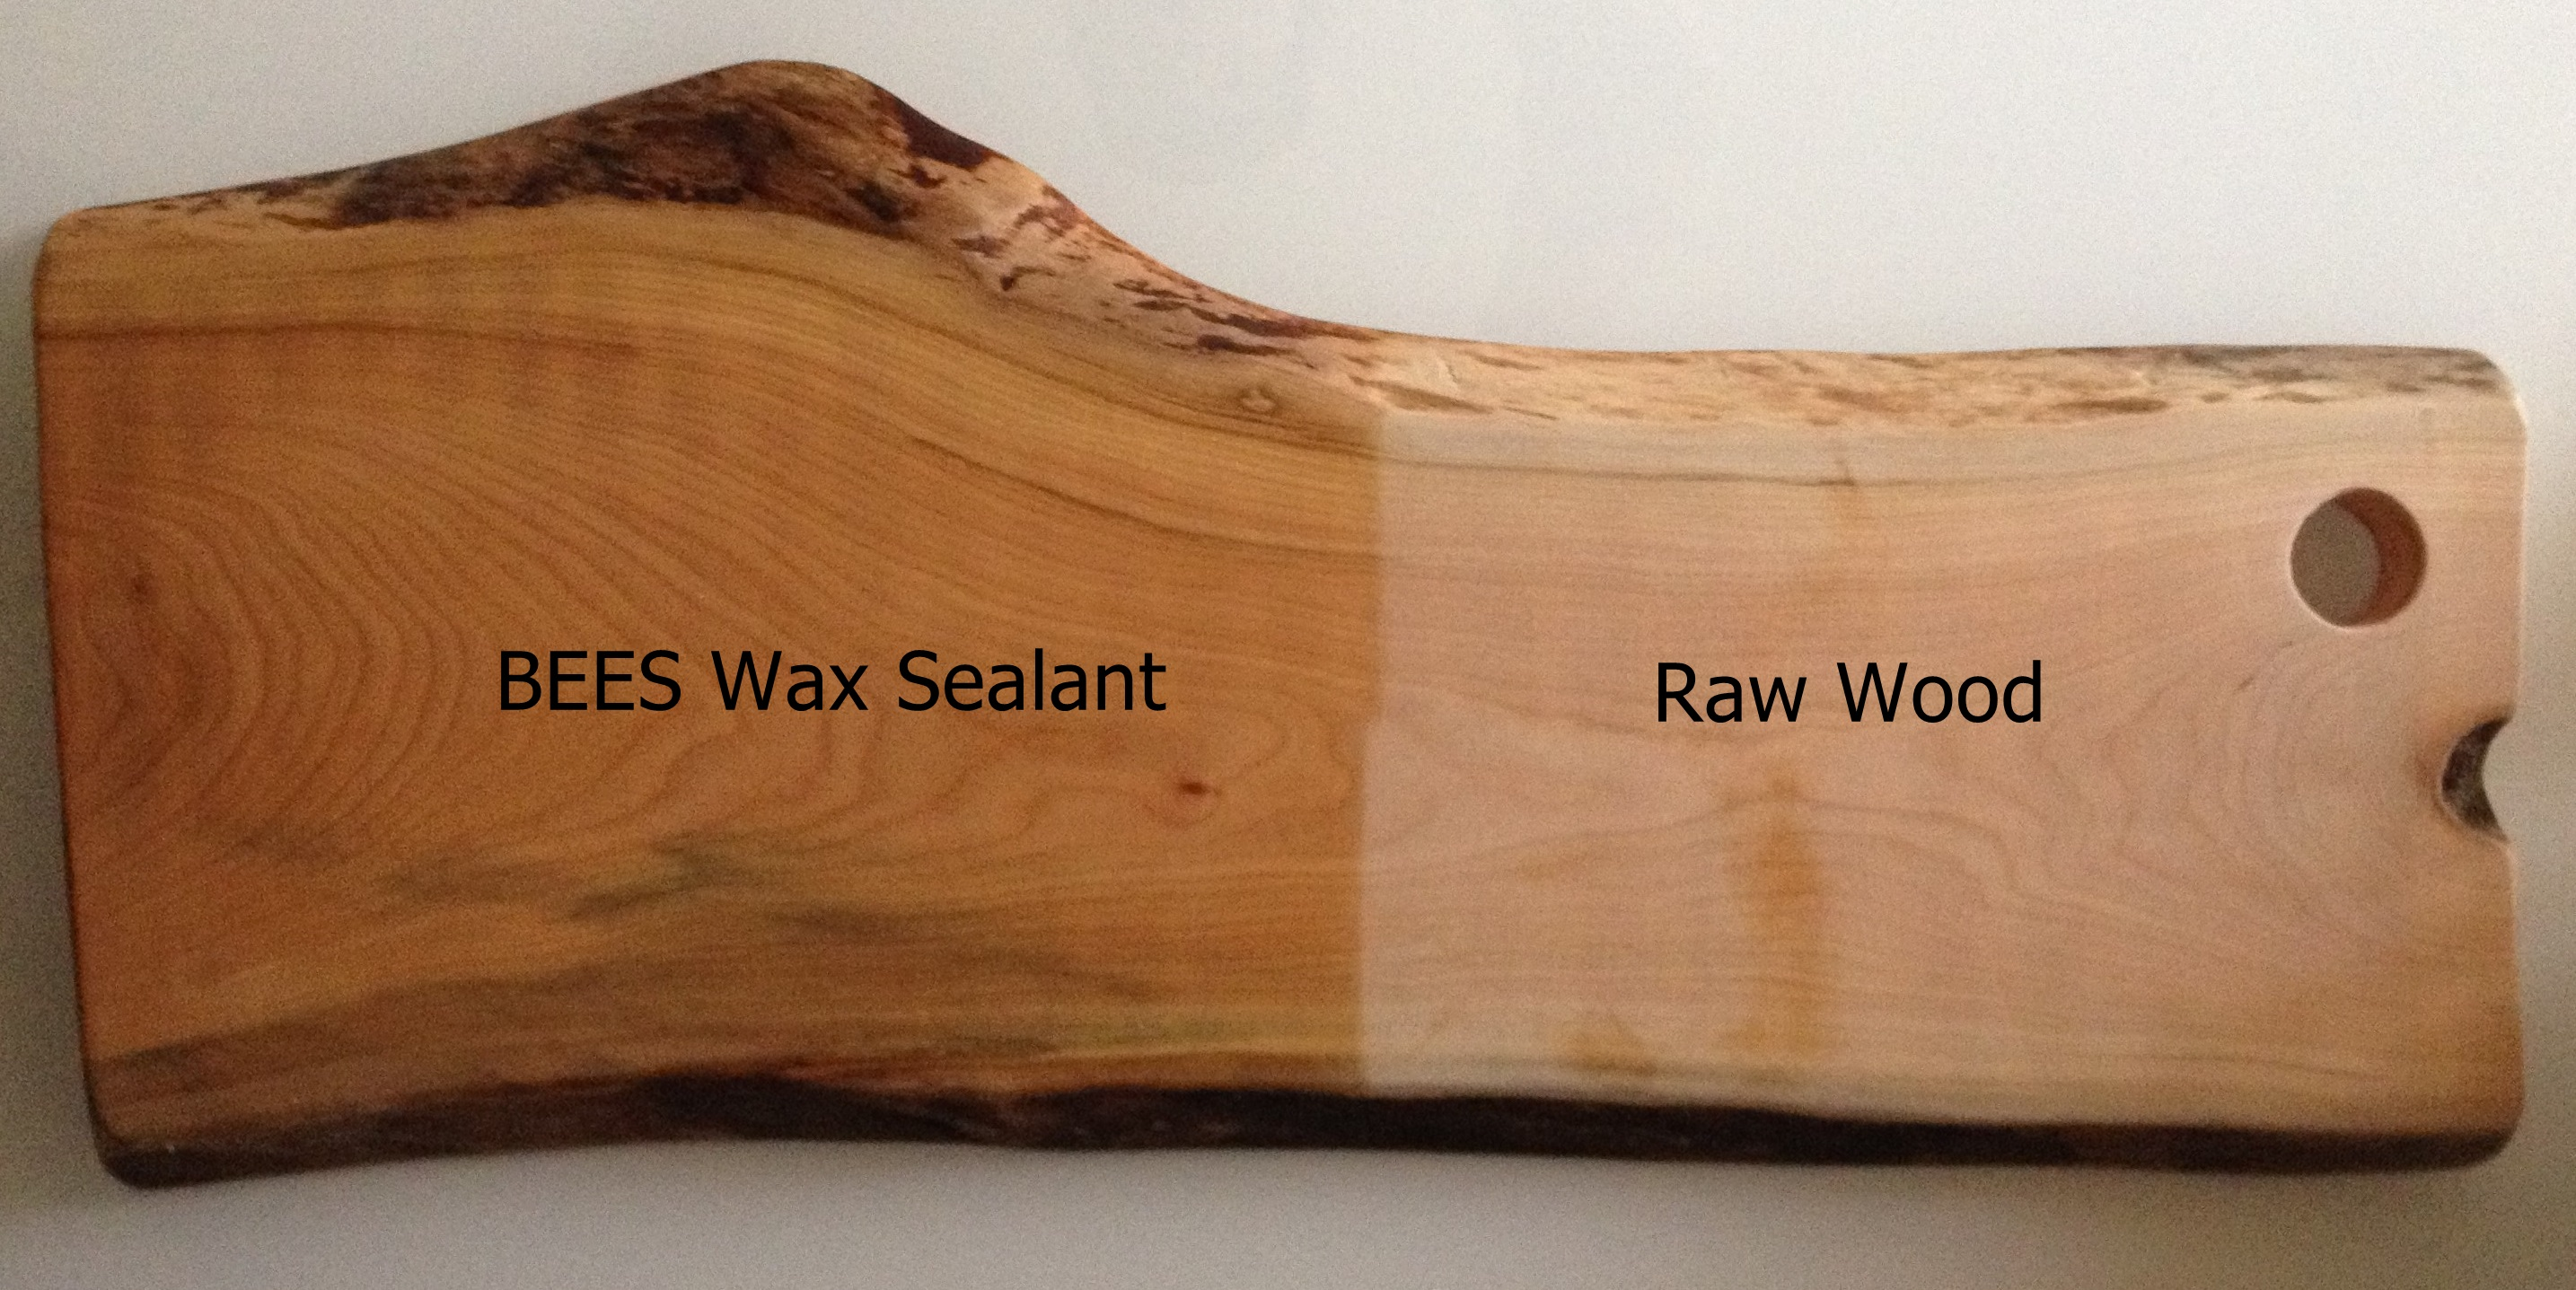 Bees Wax Sealant   Wood Care. Bees Wax Sealant  Wood Furniture Protection  Natural Wood Sealant